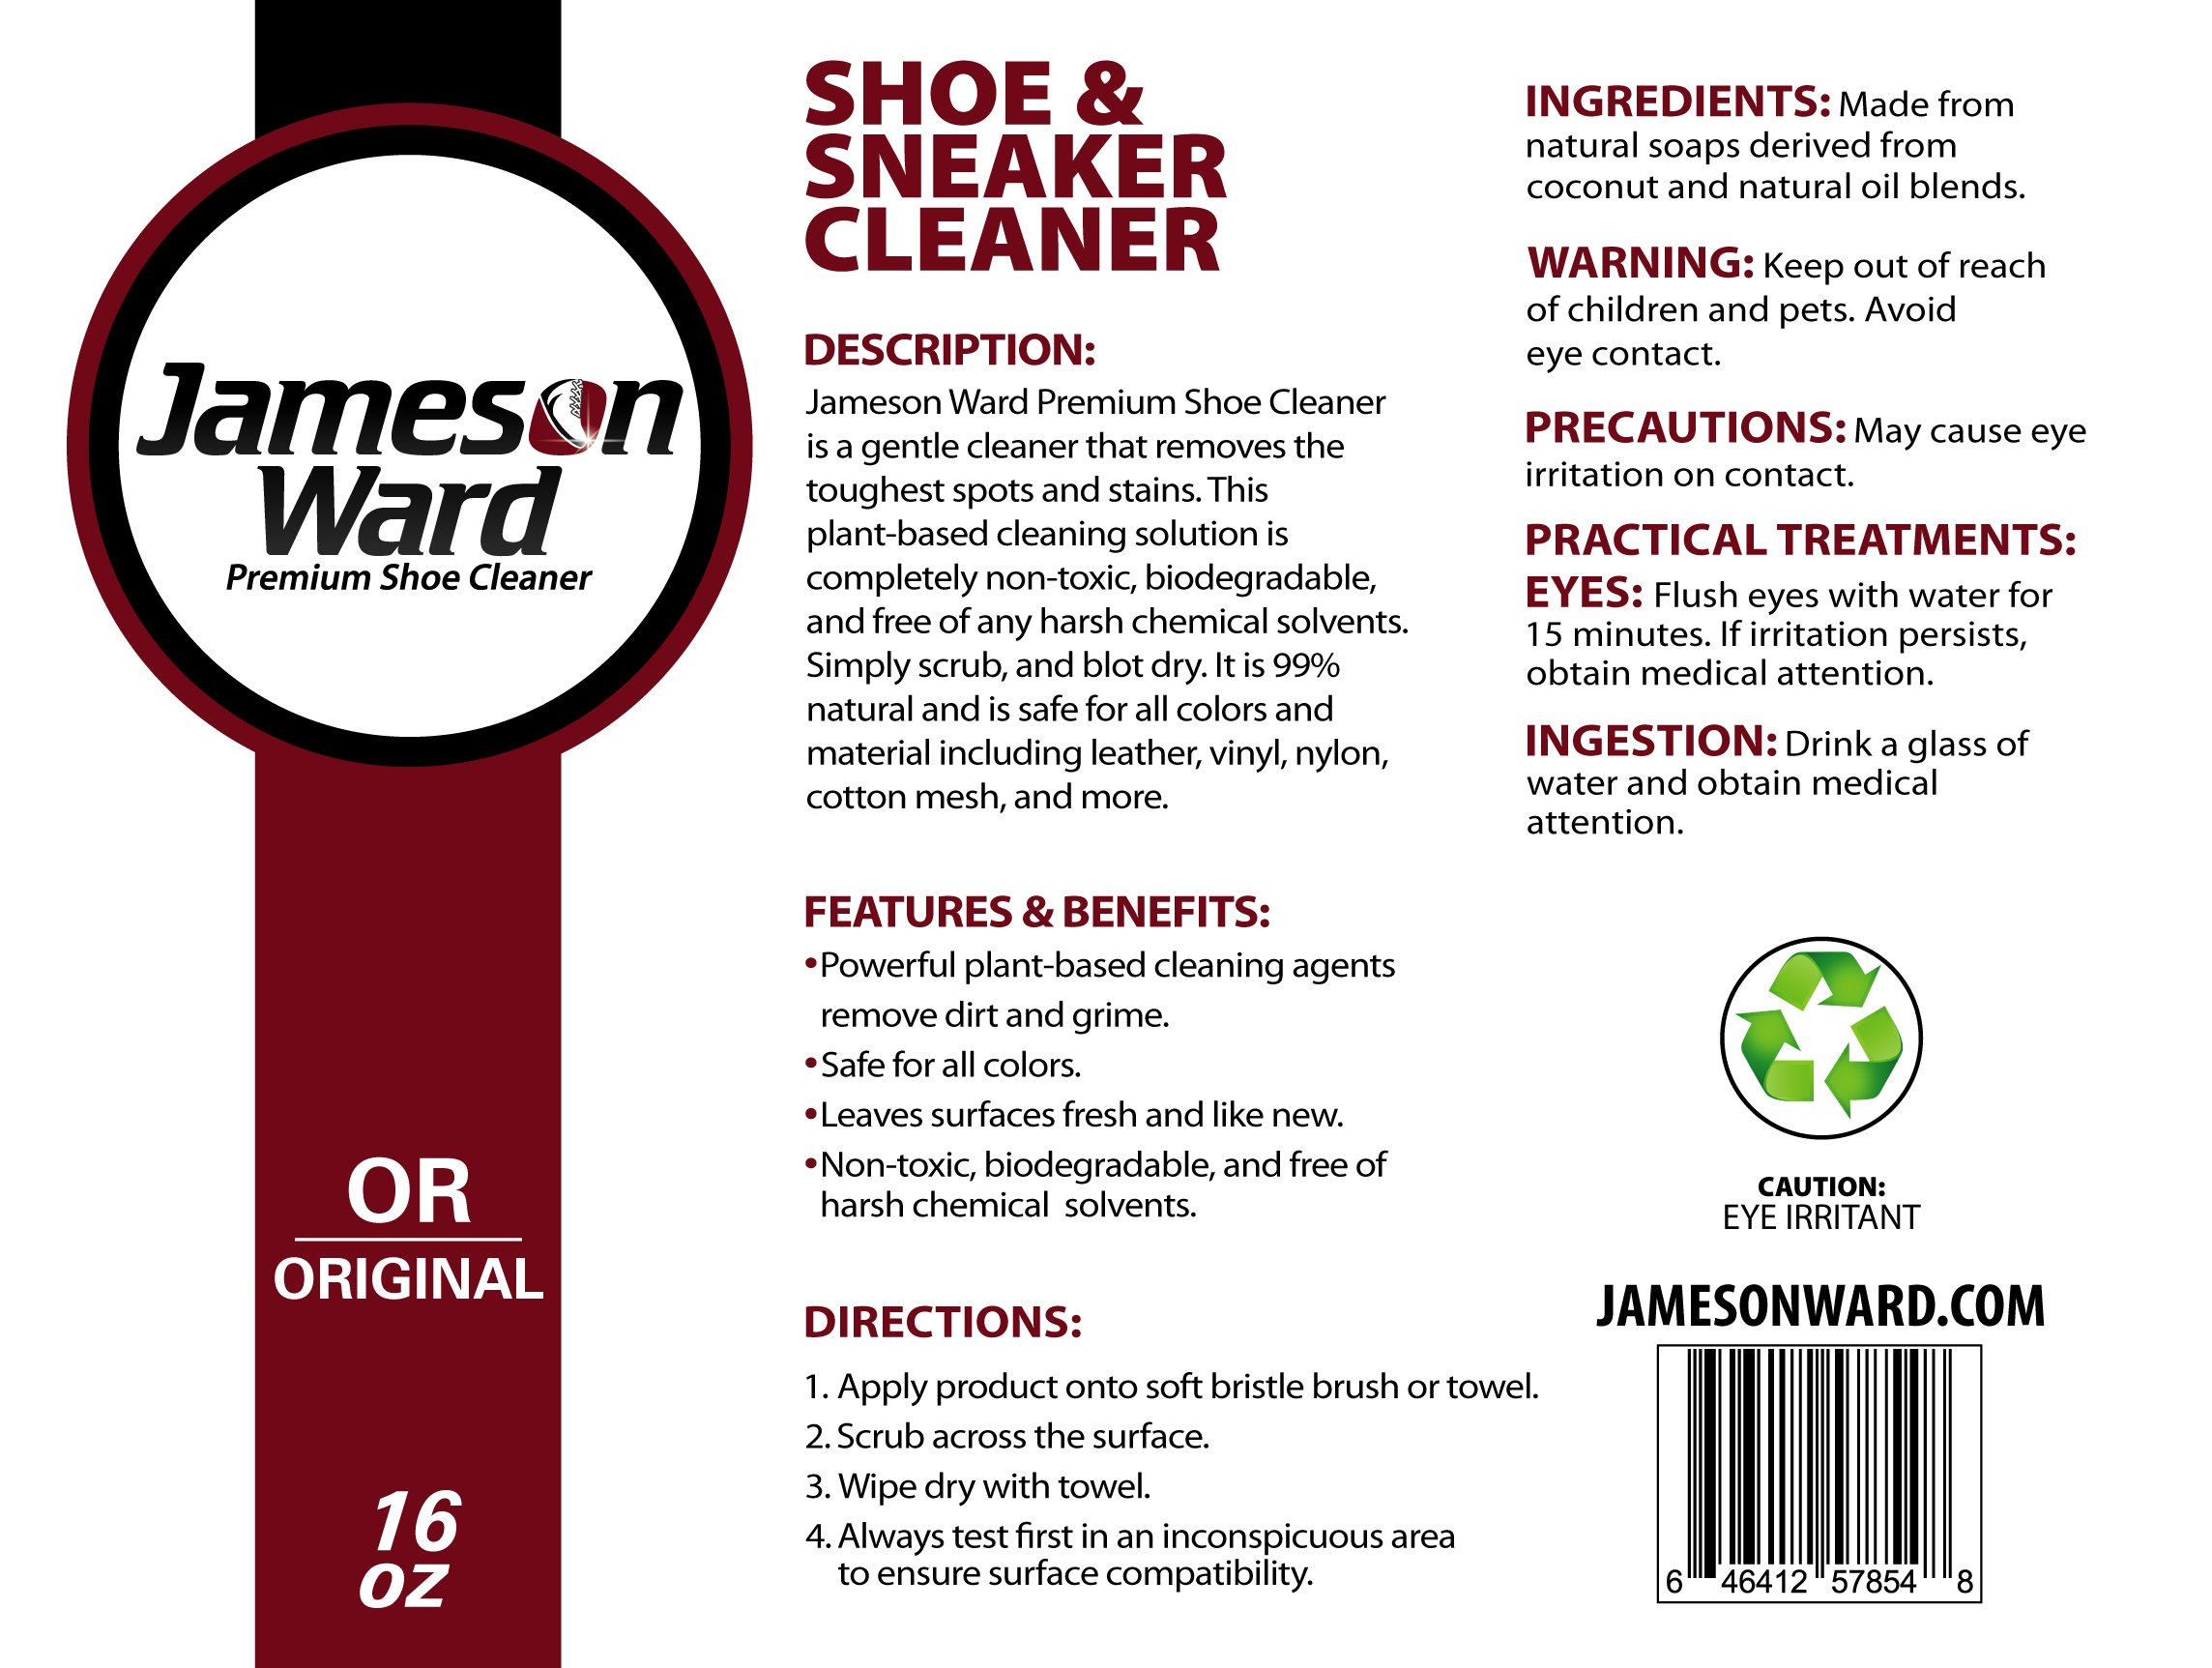 Premium Shoe Cleaner By Jameson Ward 16Oz-Sneaker,Tennis,Basketball,Golf Shoe,Boot,Leather,Nubuck&More by Jameson Ward Premium Shoe Cleaner (Image #2)